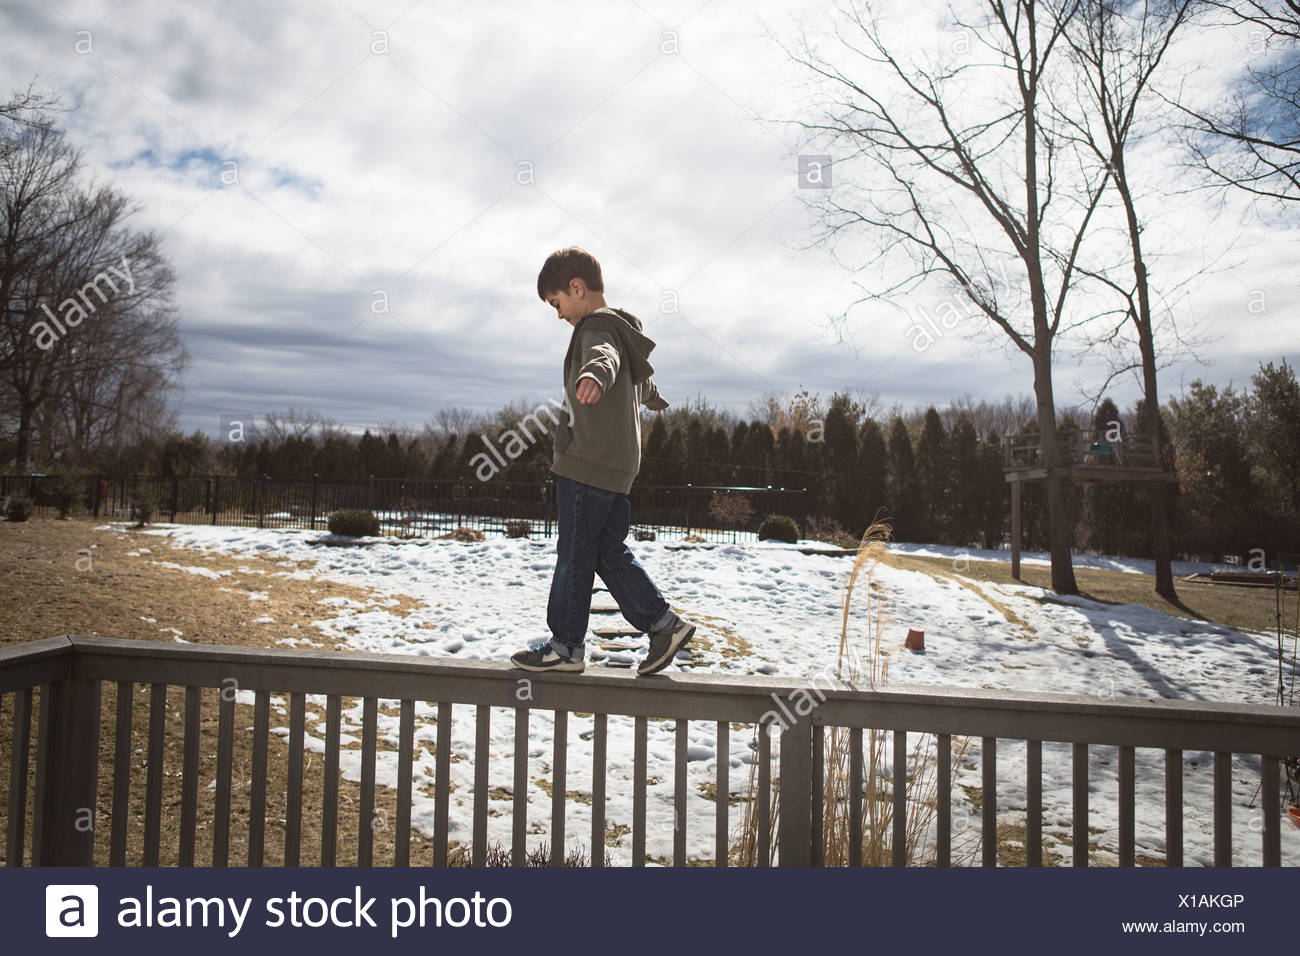 Boy walking along top of fence in park - Stock Image